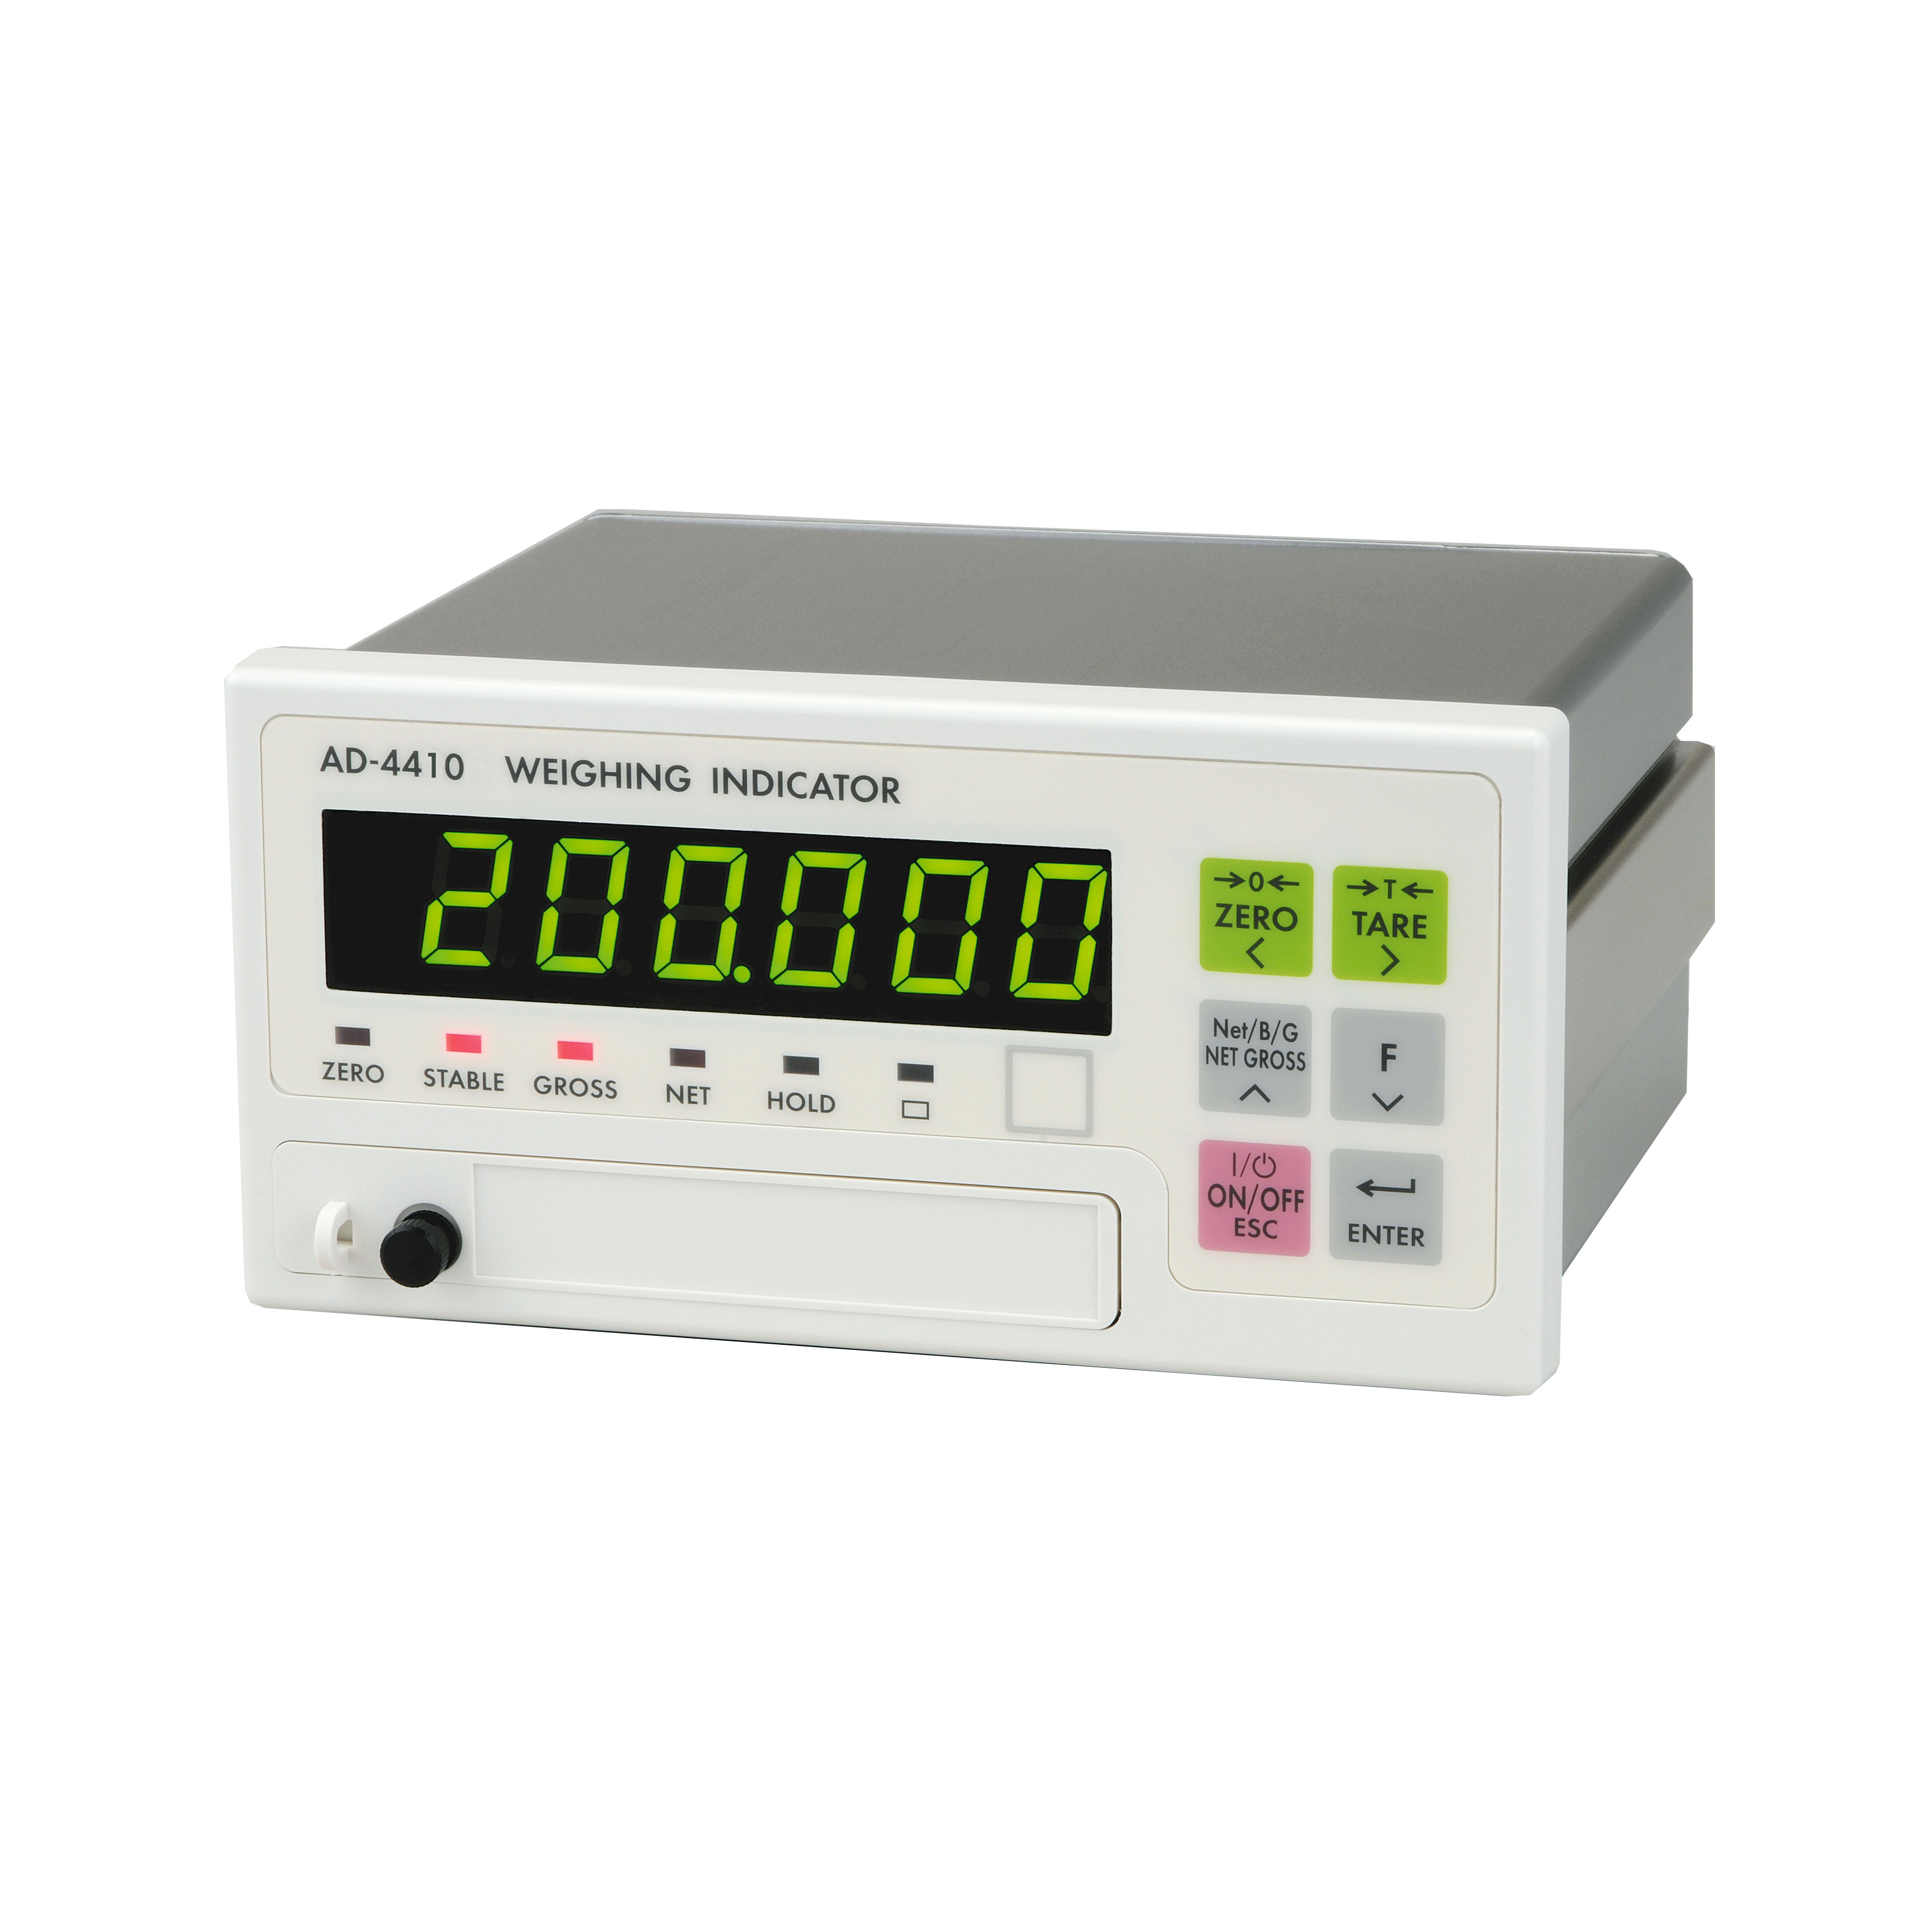 AD-4410 High Speed Anti-Vibration Weighing Indicator